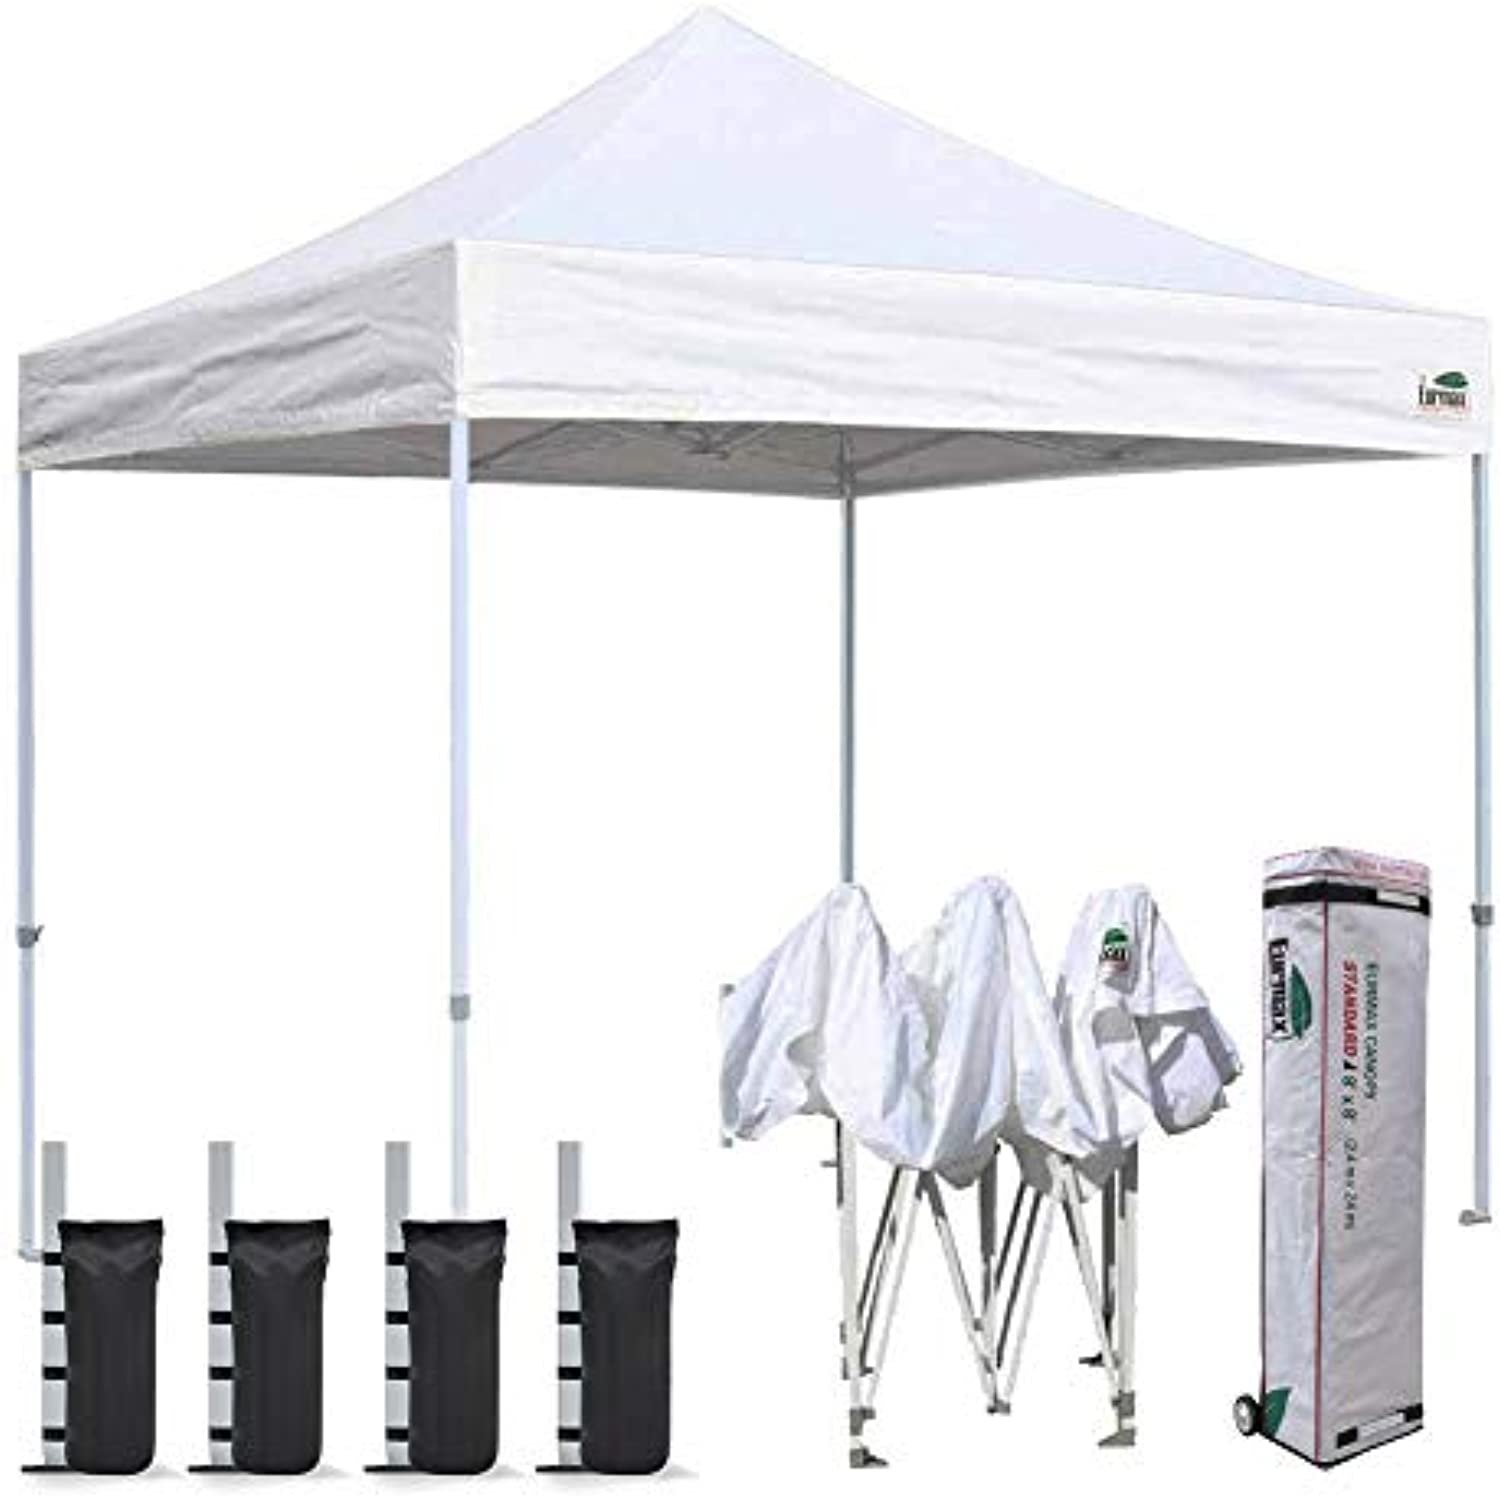 Eurmax 8'x8' Ez Pop Up Canopy Tent Commercial Instant Canopies Party Tent with Heavy Duty Roller Bag,Bonus 4 Sand Weights Bags (White)